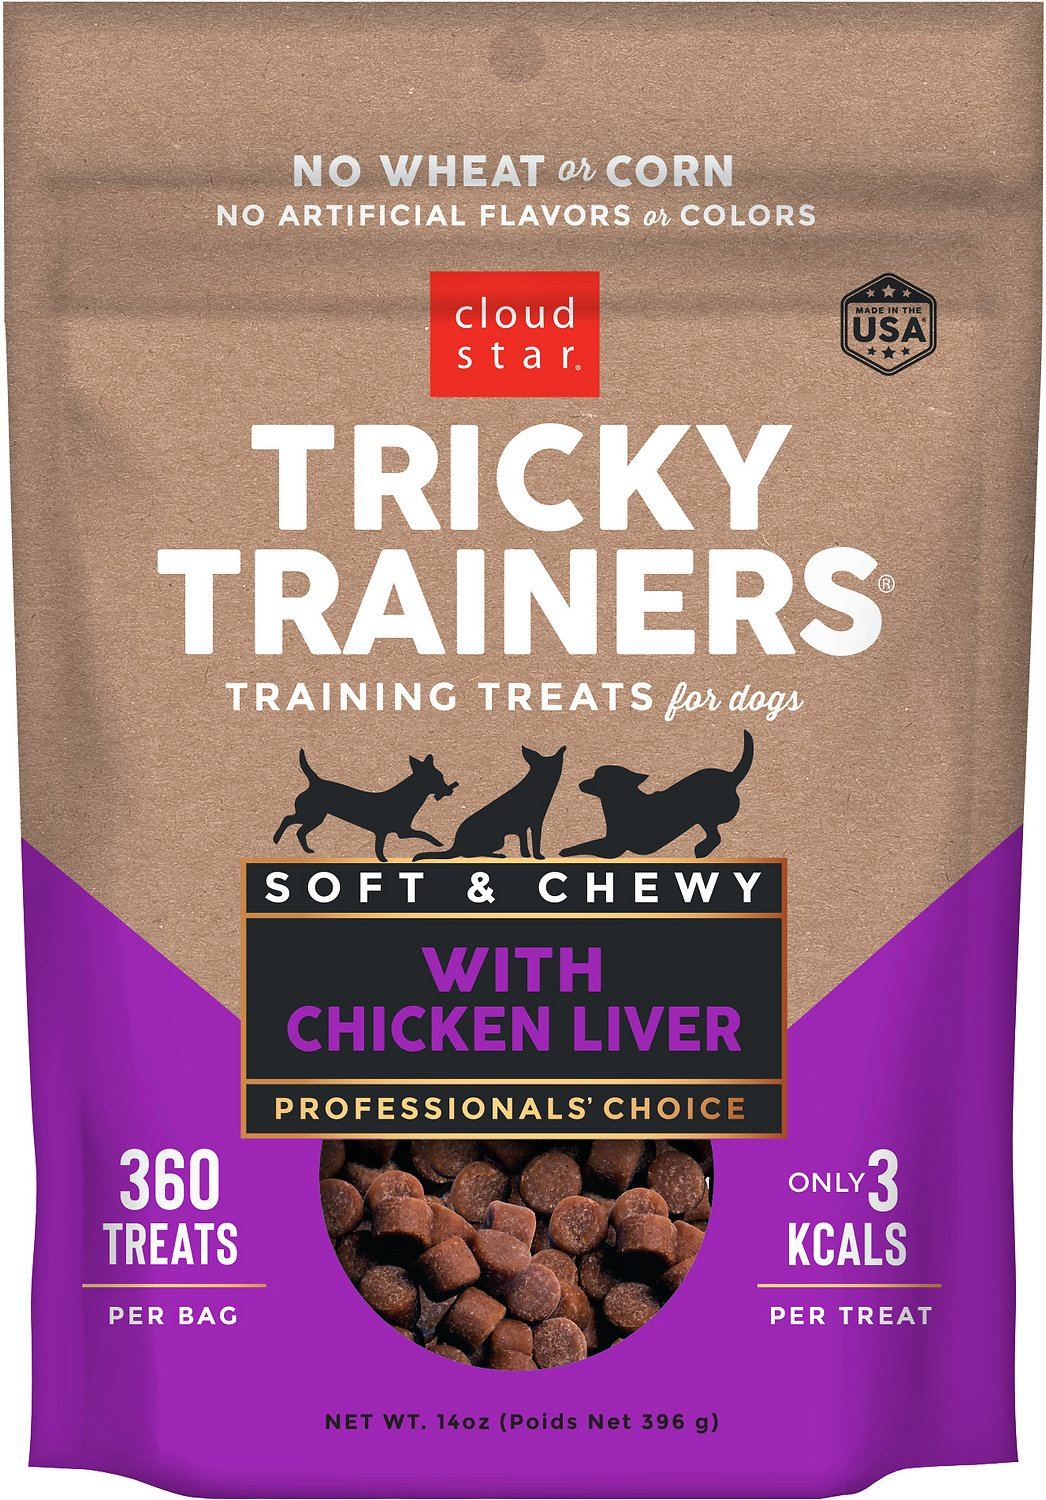 Dainty Cloud Star Chewy Tricky Trainers Liver Flavor Dog Bag Cloud Star Chewy Tricky Trainers Liver Flavor Dog Bag Dog Training Treats Uk Dog Training Treats Pets At Home bark post Dog Training Treats